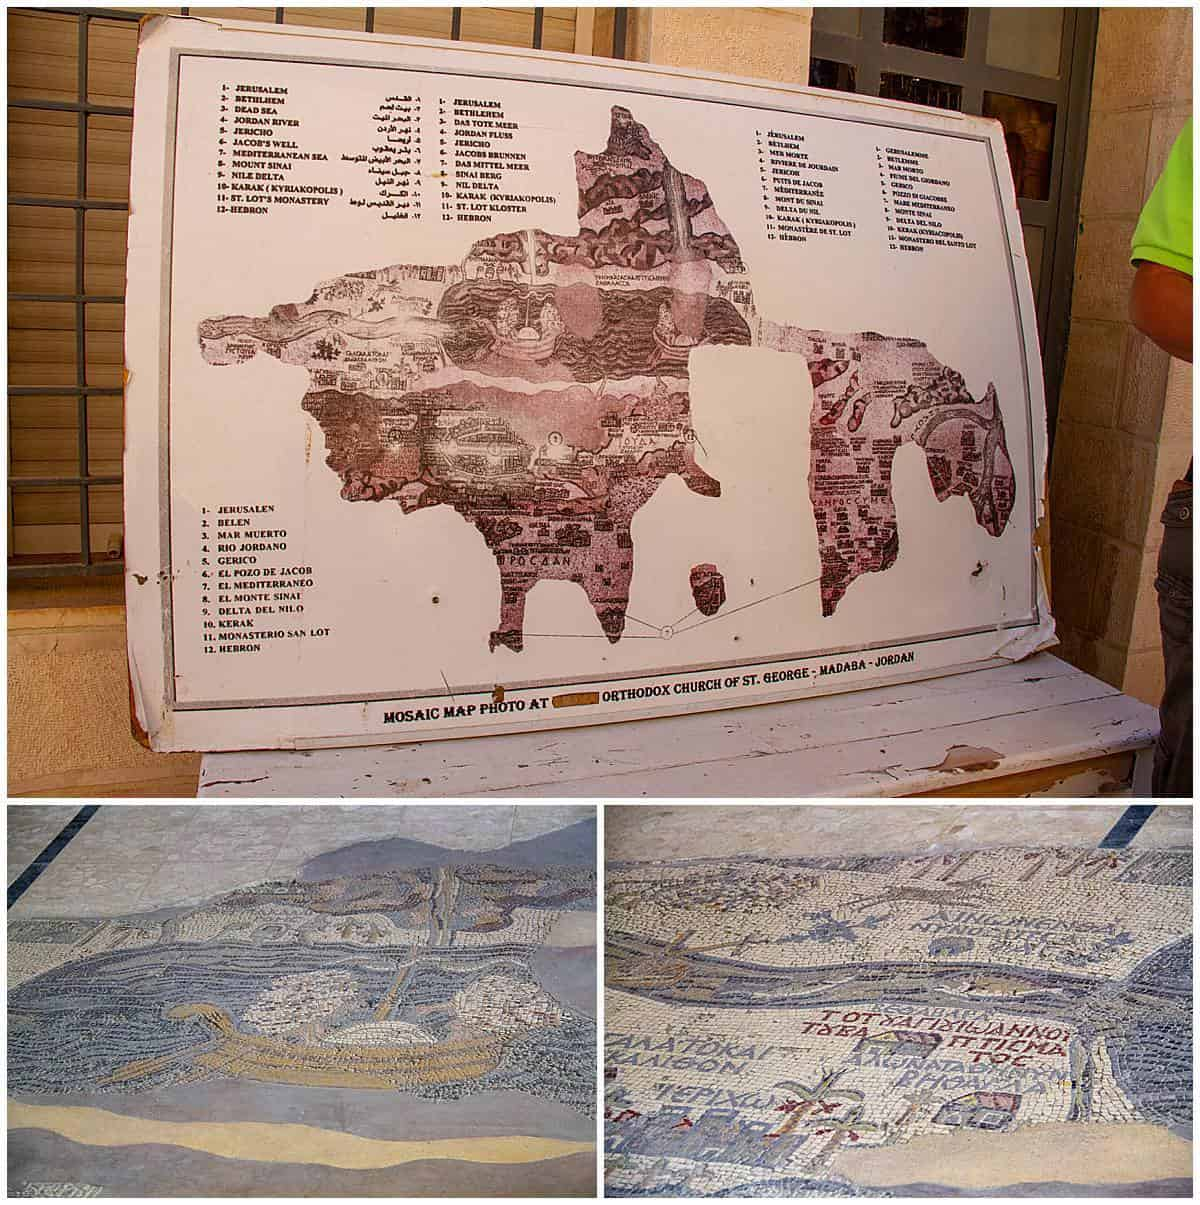 Madaba map of mosaics of the holy land